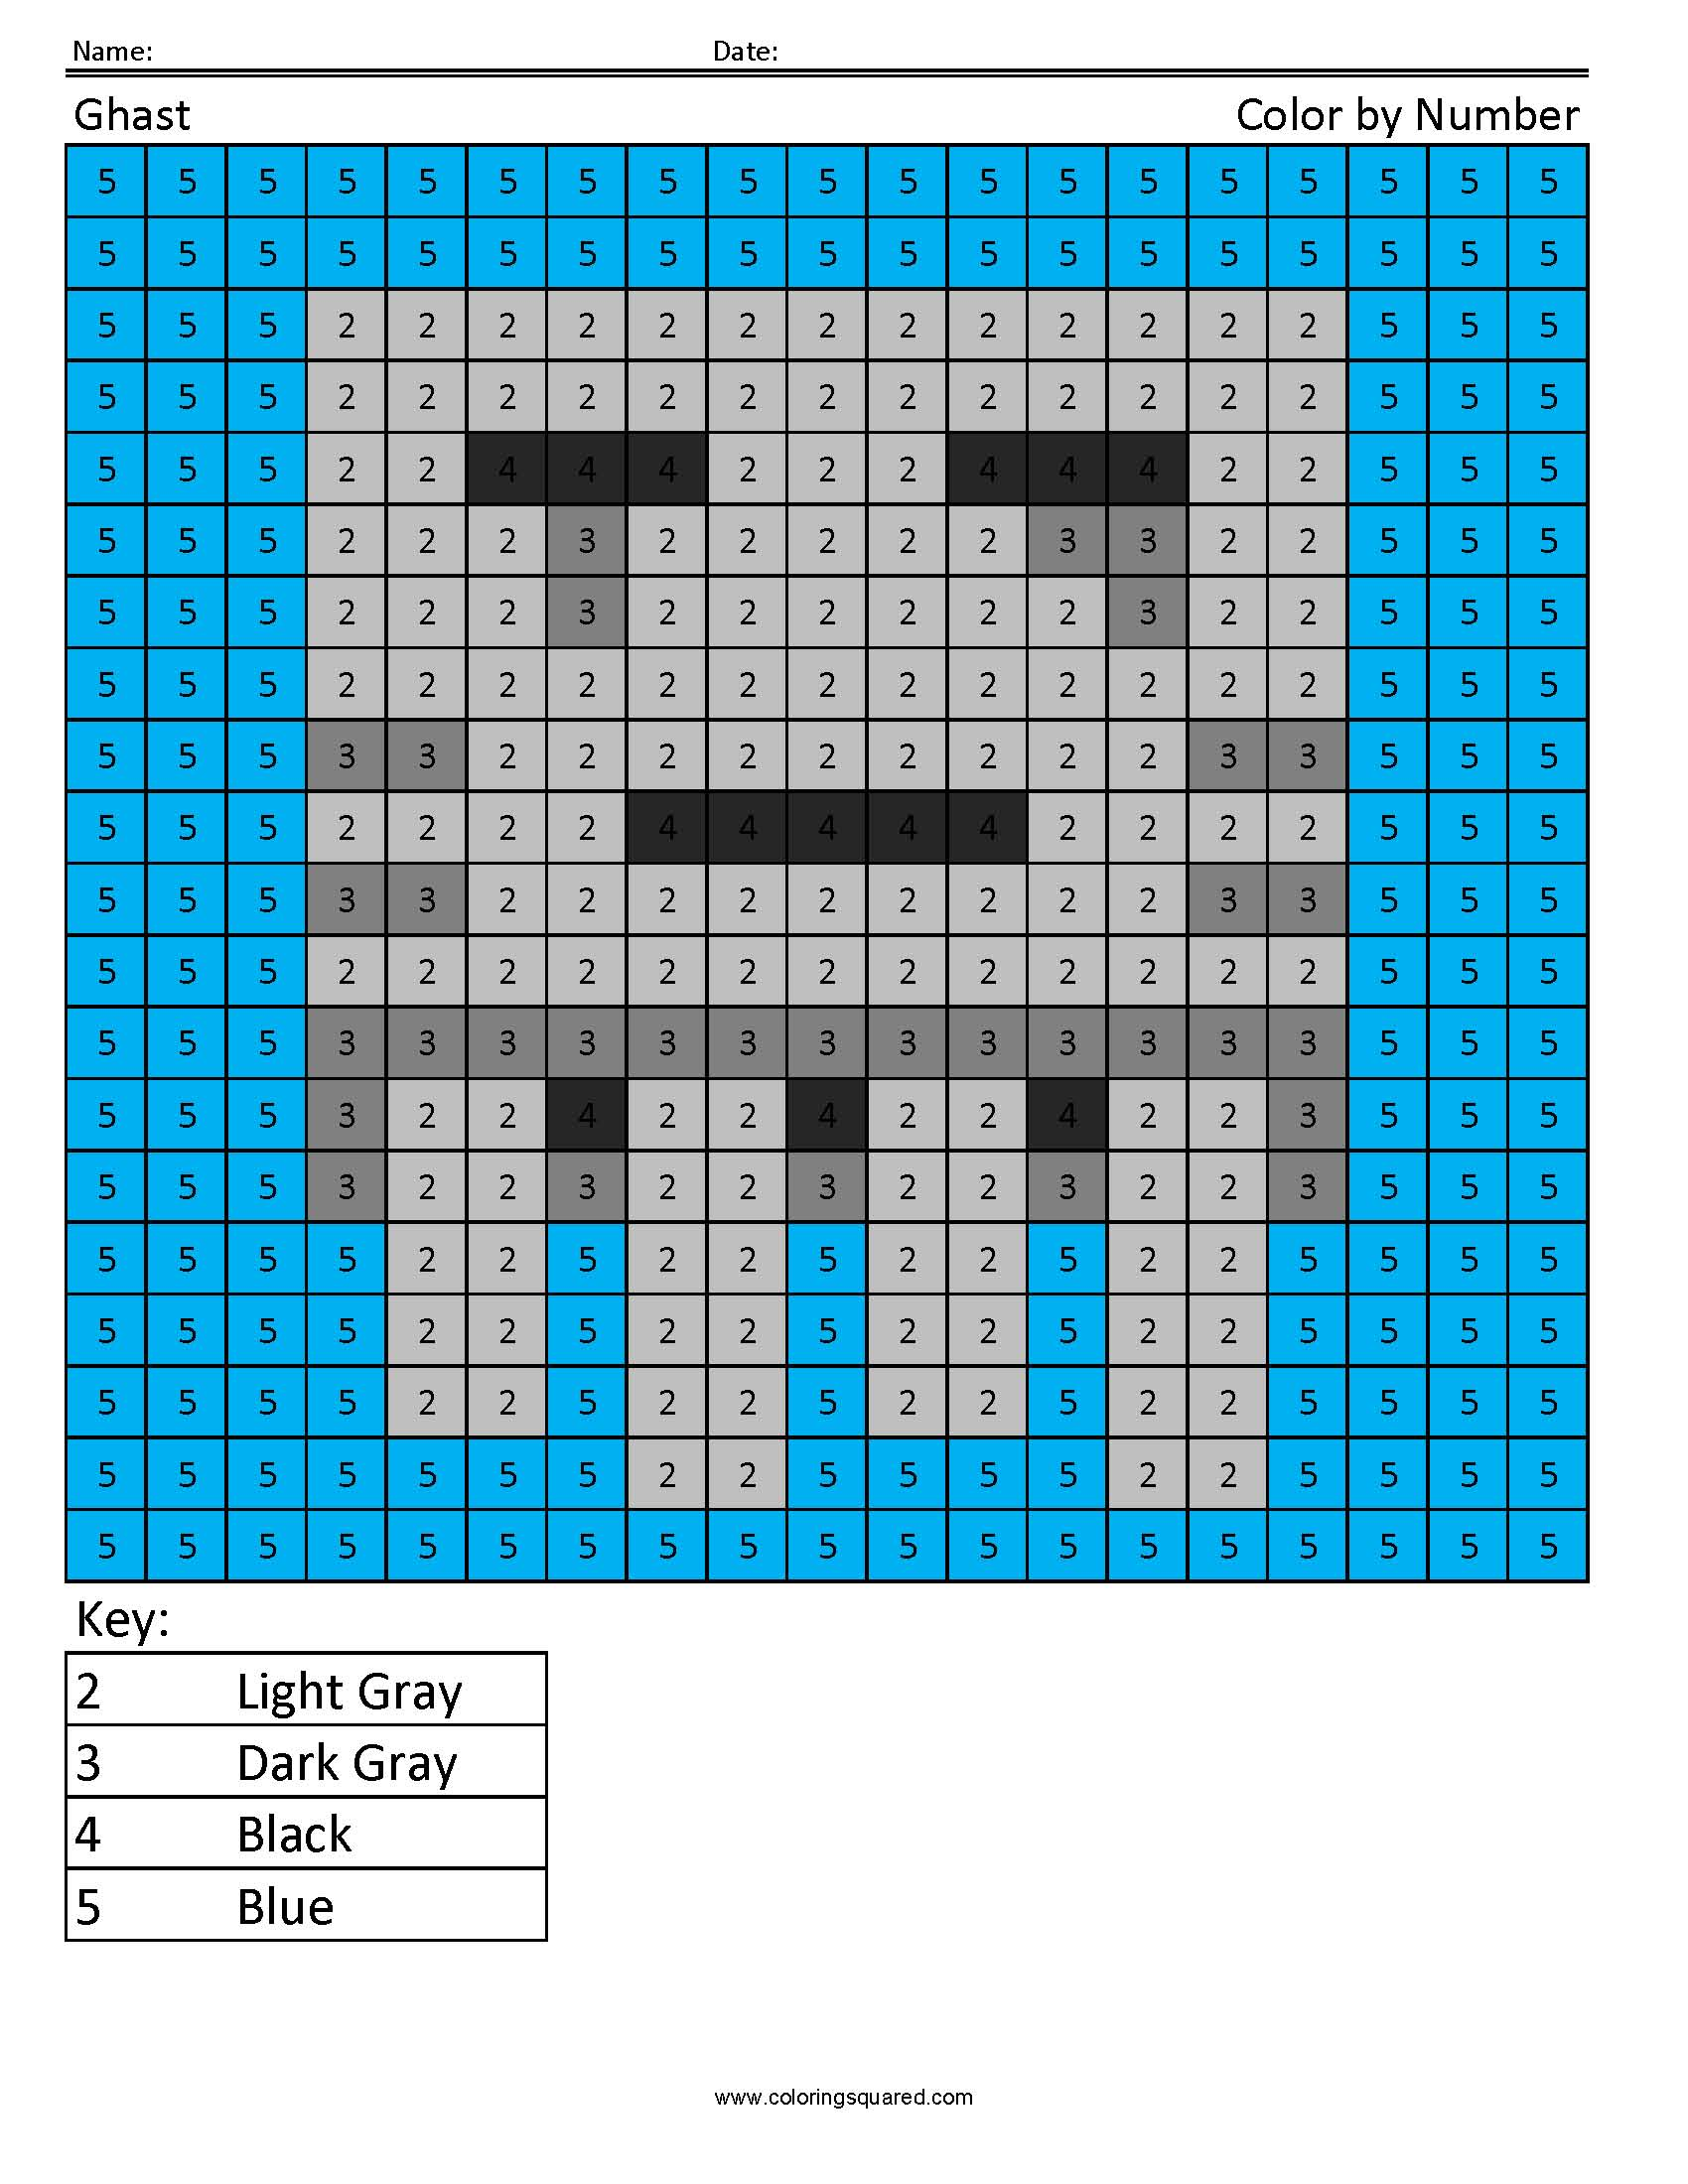 Ghast- Color by Number - Coloring Squared